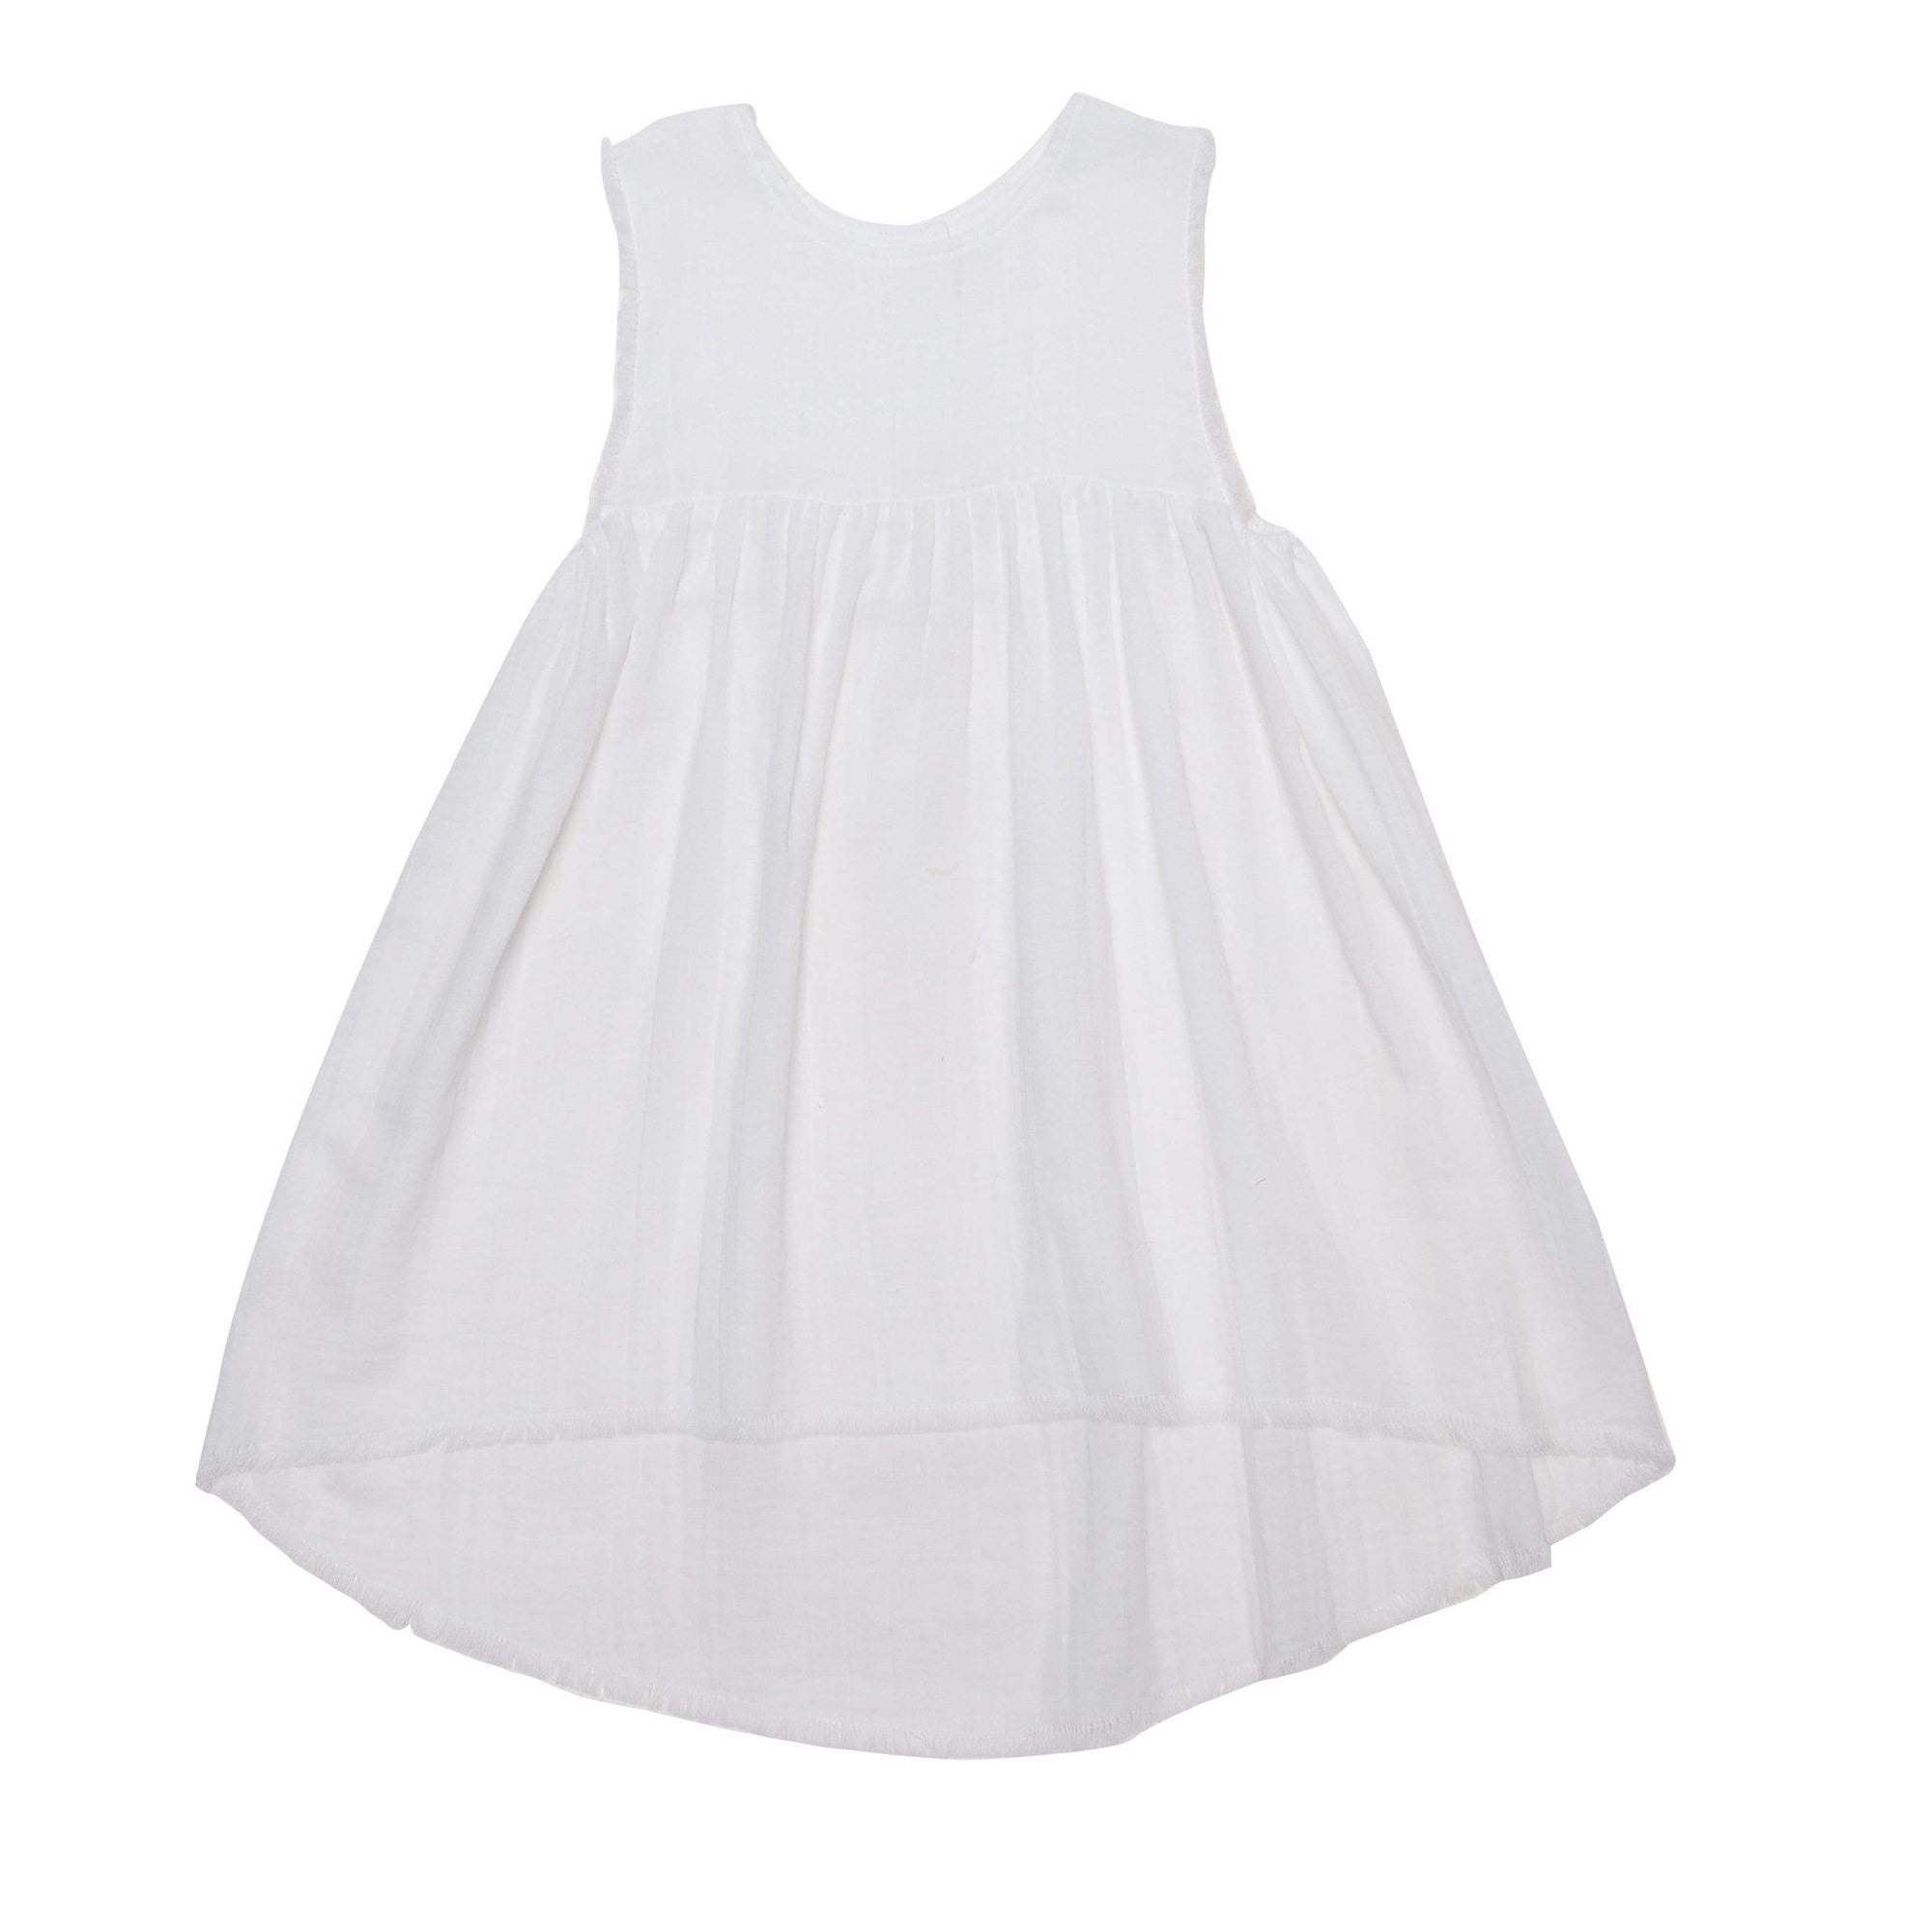 Alex & Ant Dresses Alex & Ant Rylee Dress White